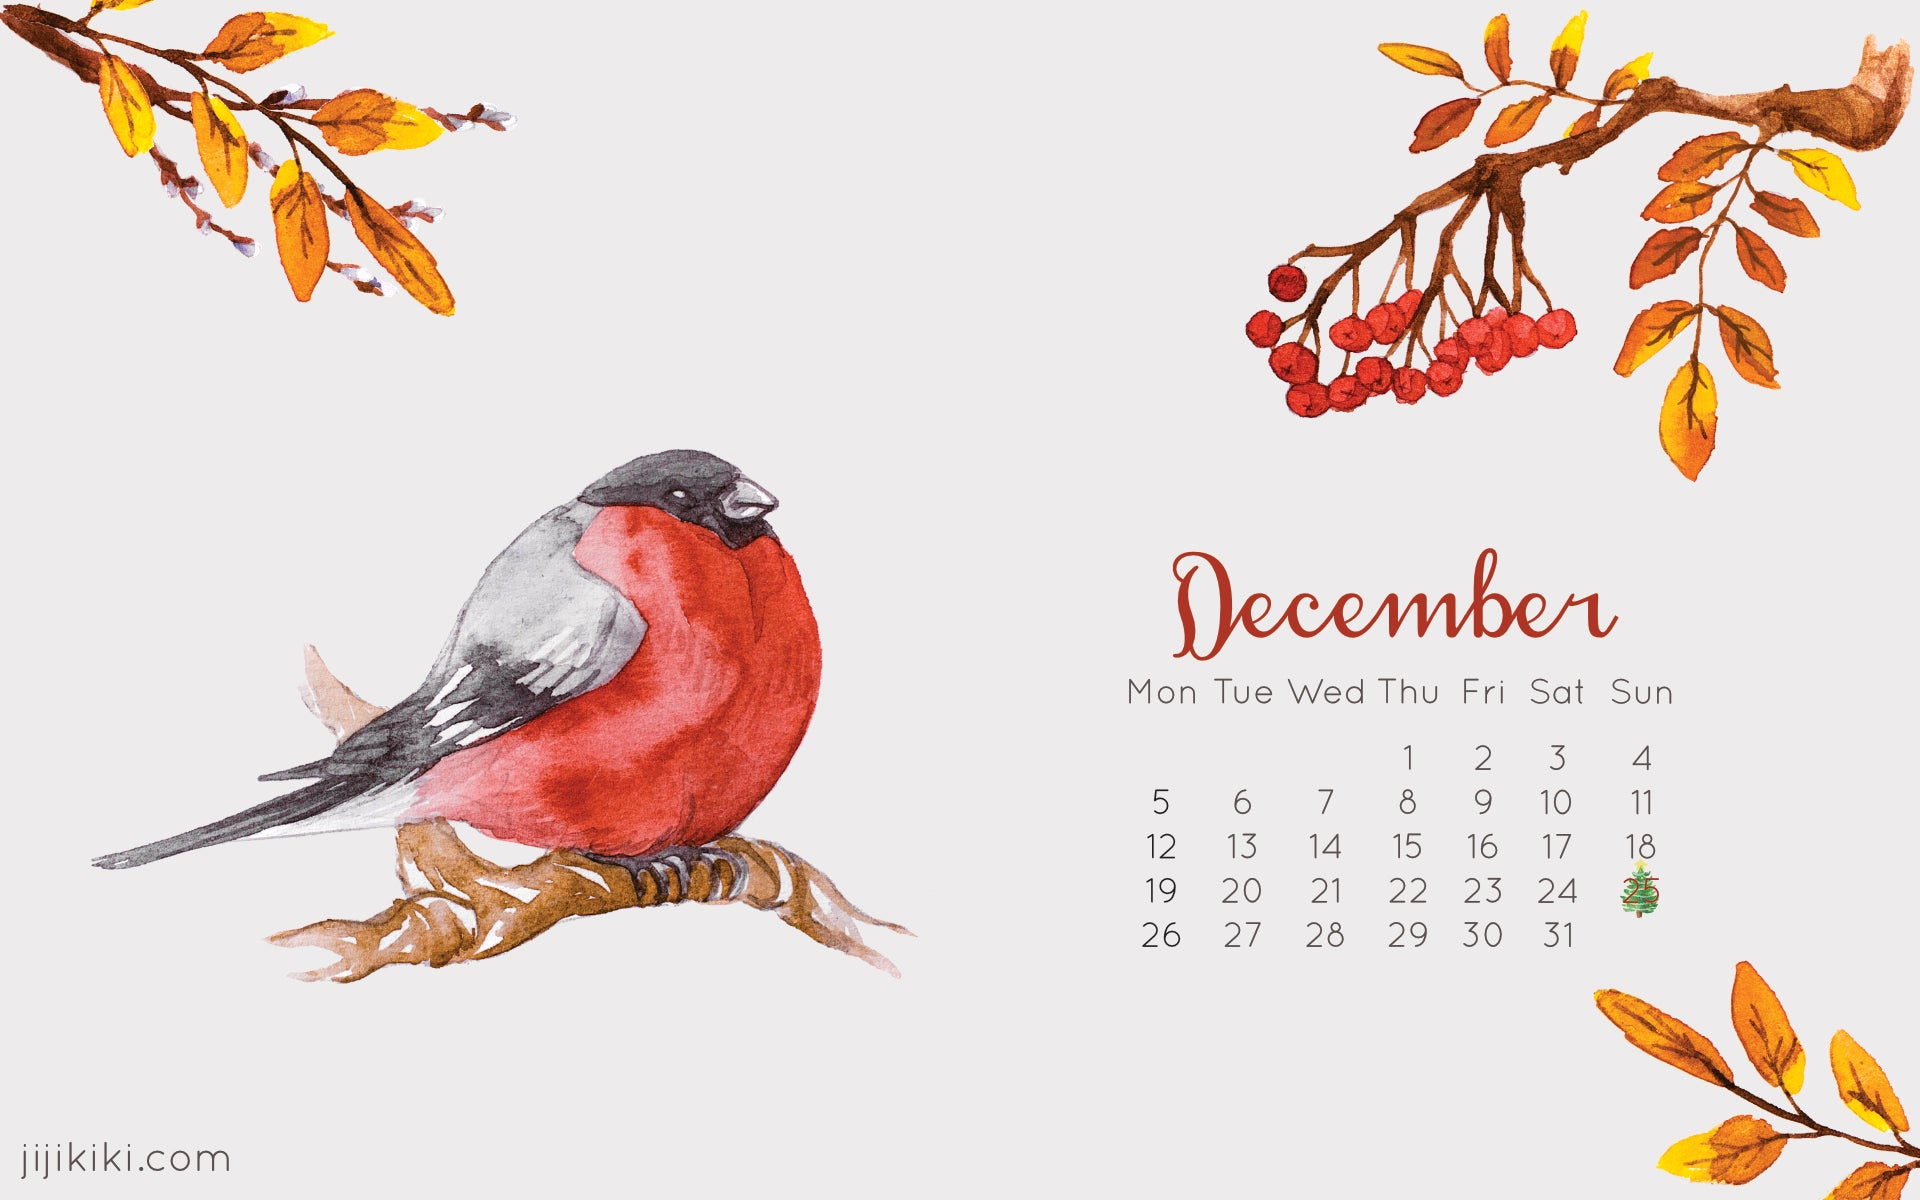 December 2016 Free Desktop Calendar Christmas Wallpaper